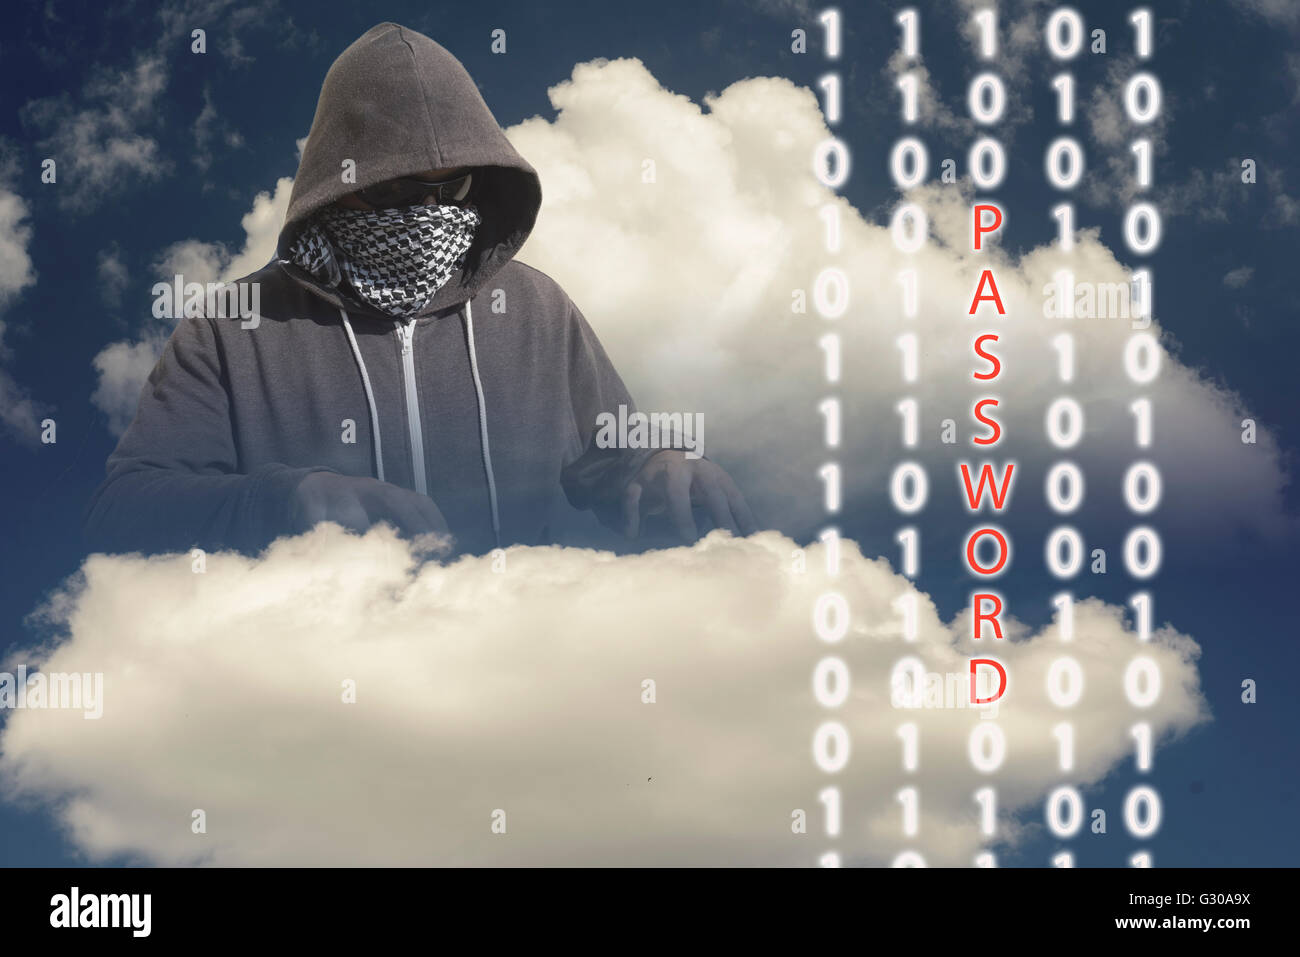 Hooded and masked computer hacker thief with a cloud computer based binary code background. Unknown technology threat - Stock Image